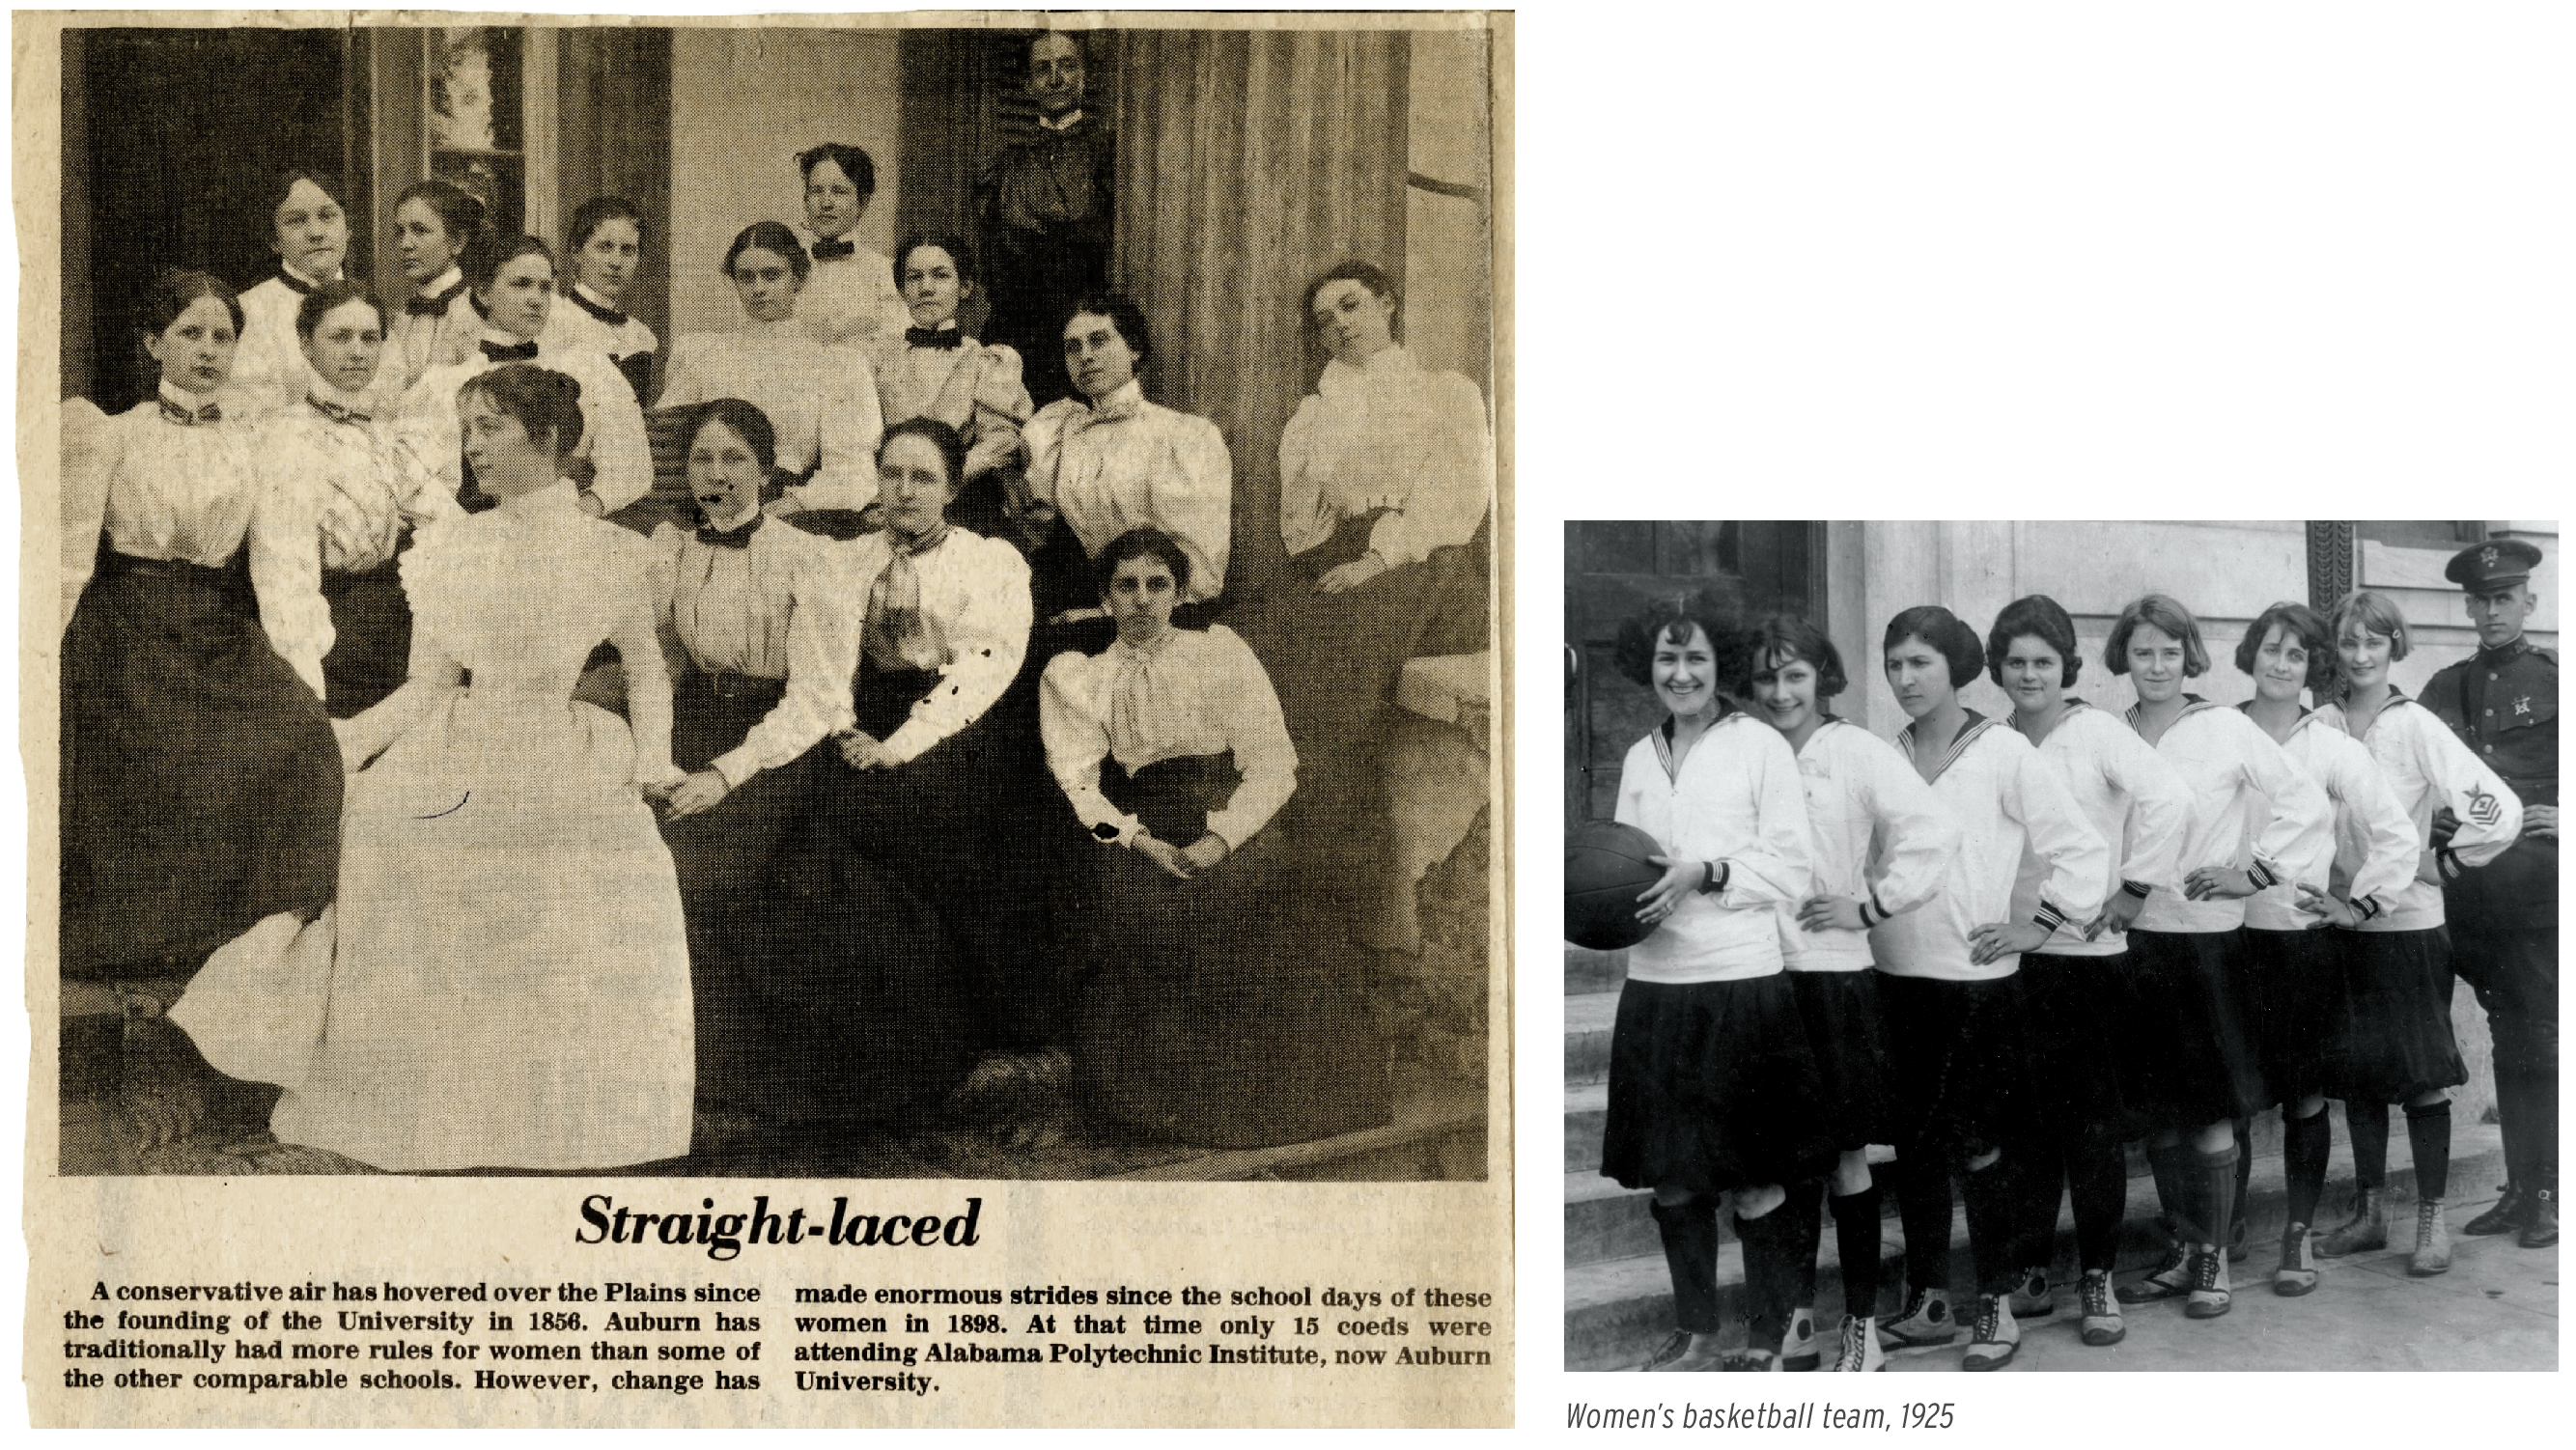 Newspaper clipping that says Straight Laced; Women's basketball team, 1925